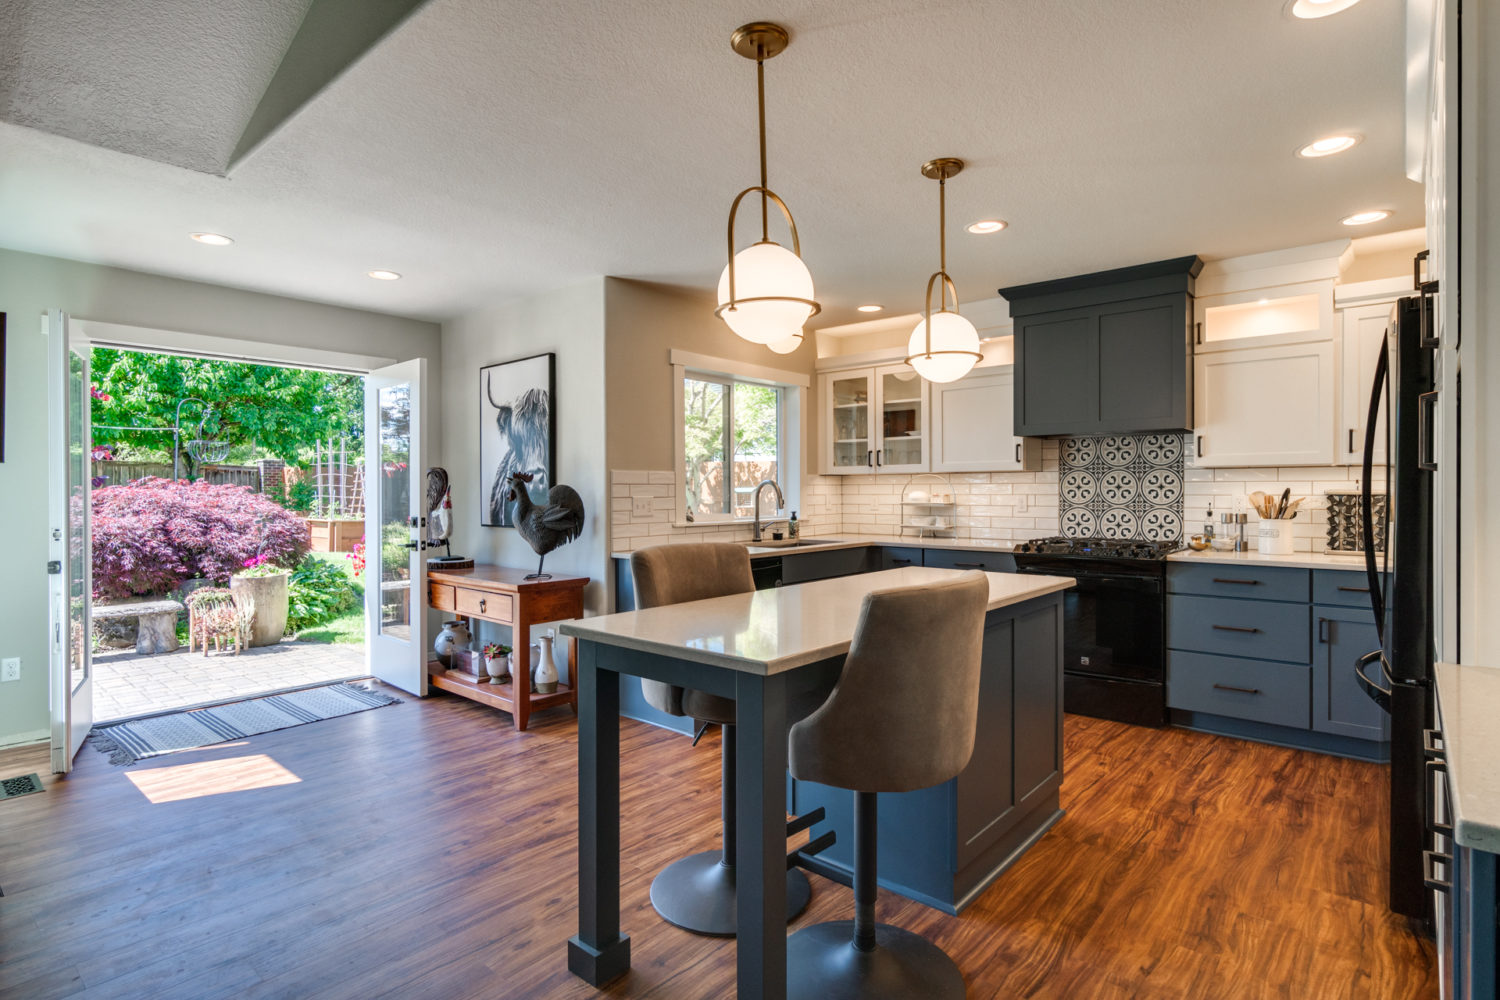 blue kitchen with pendant lights